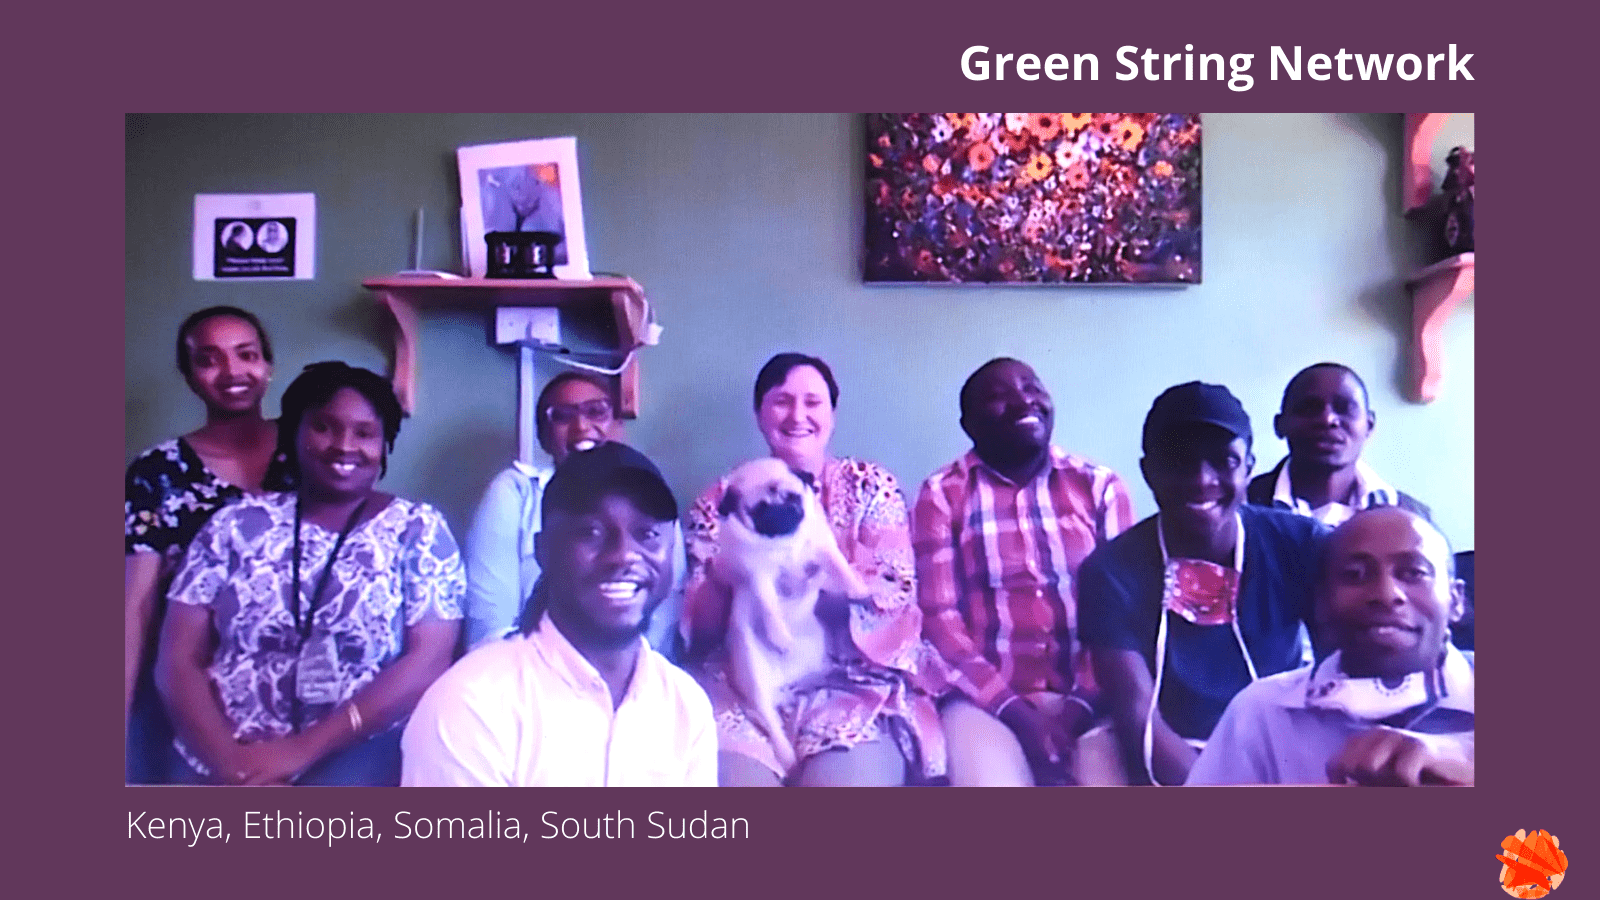 Portrait of the Green String Network team: Eigh people are sitting next to each other on a sofa, while two people crouch in front. Everyone is smiling at the camera. One woman holds a small dog in her lap. The walls behind them are a vibrant green, with paintings on them.